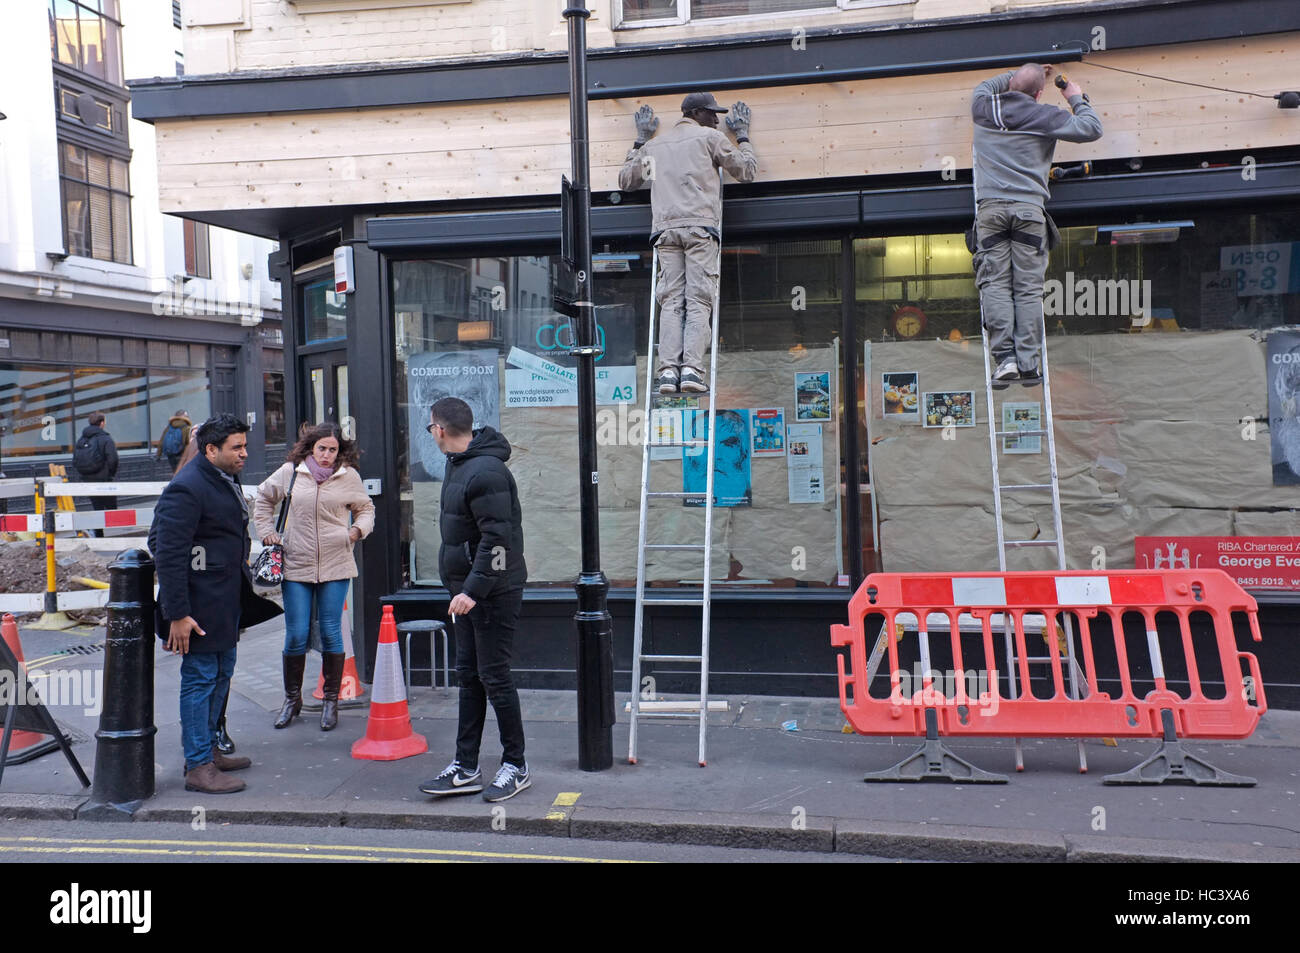 Working on a shop front in London's Soho. - Stock Image